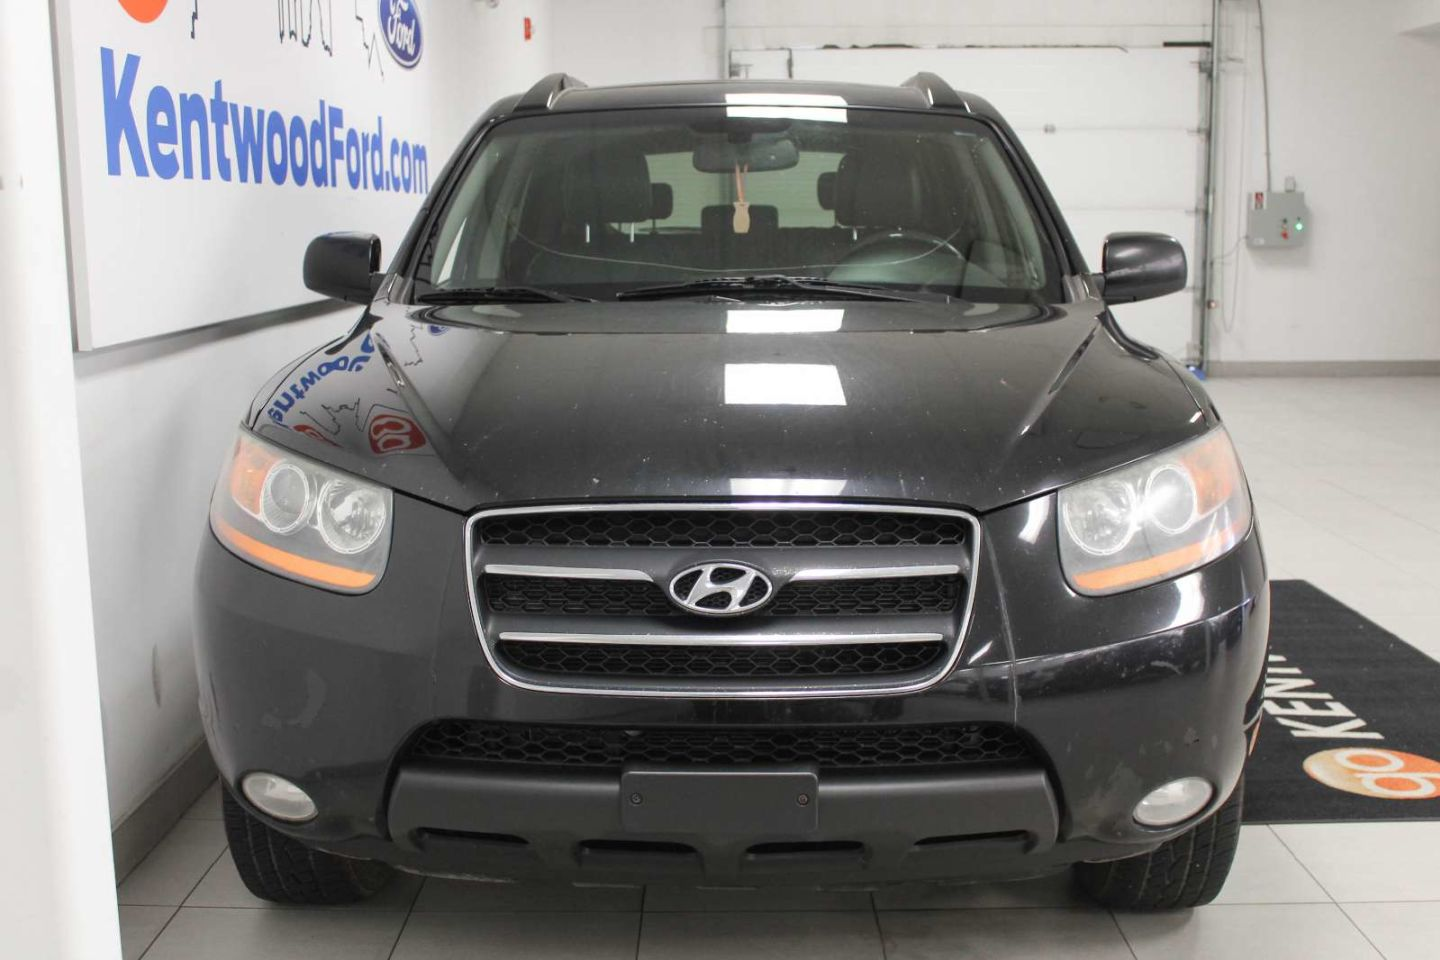 2009 Hyundai Santa Fe Limited for sale in Edmonton, Alberta